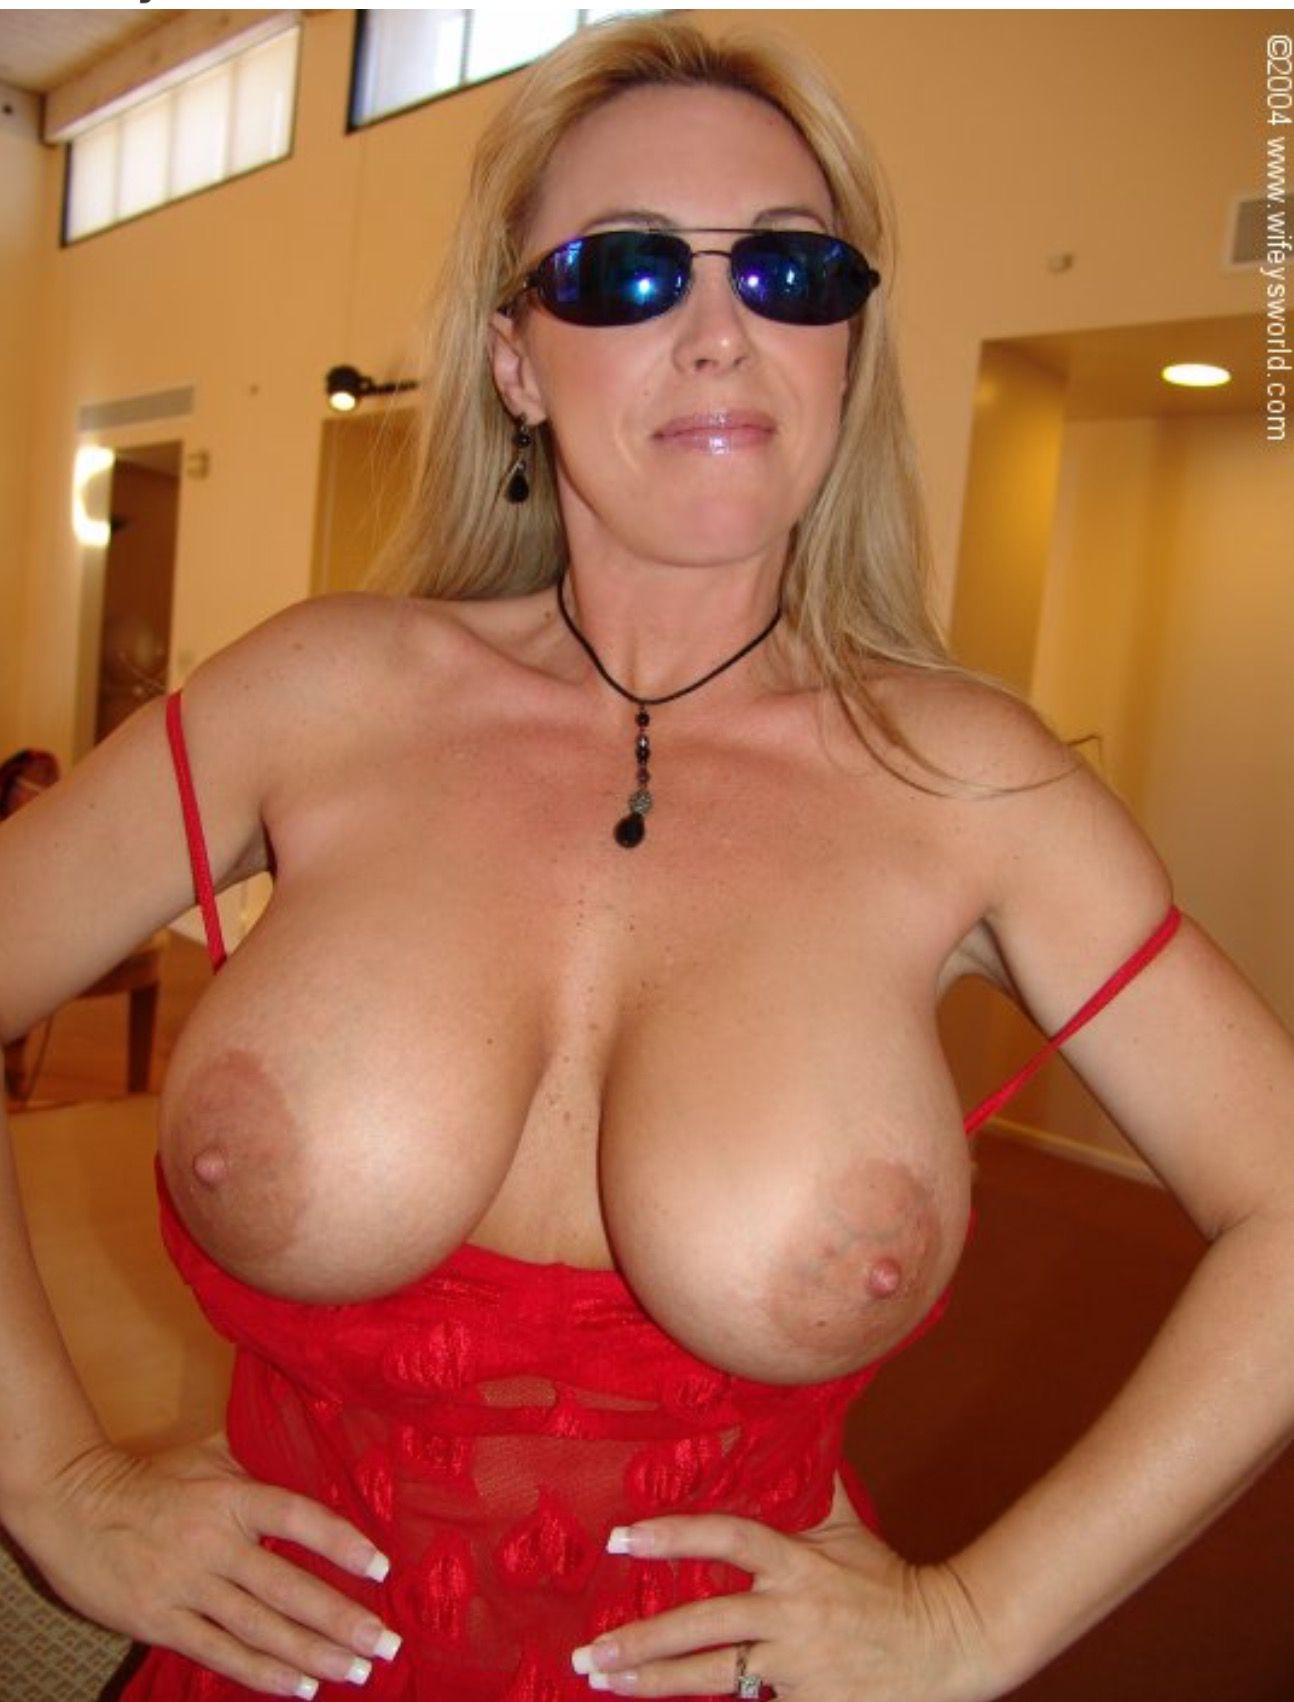 Pin By My Info On All Natural Larger Breasted Women Lover